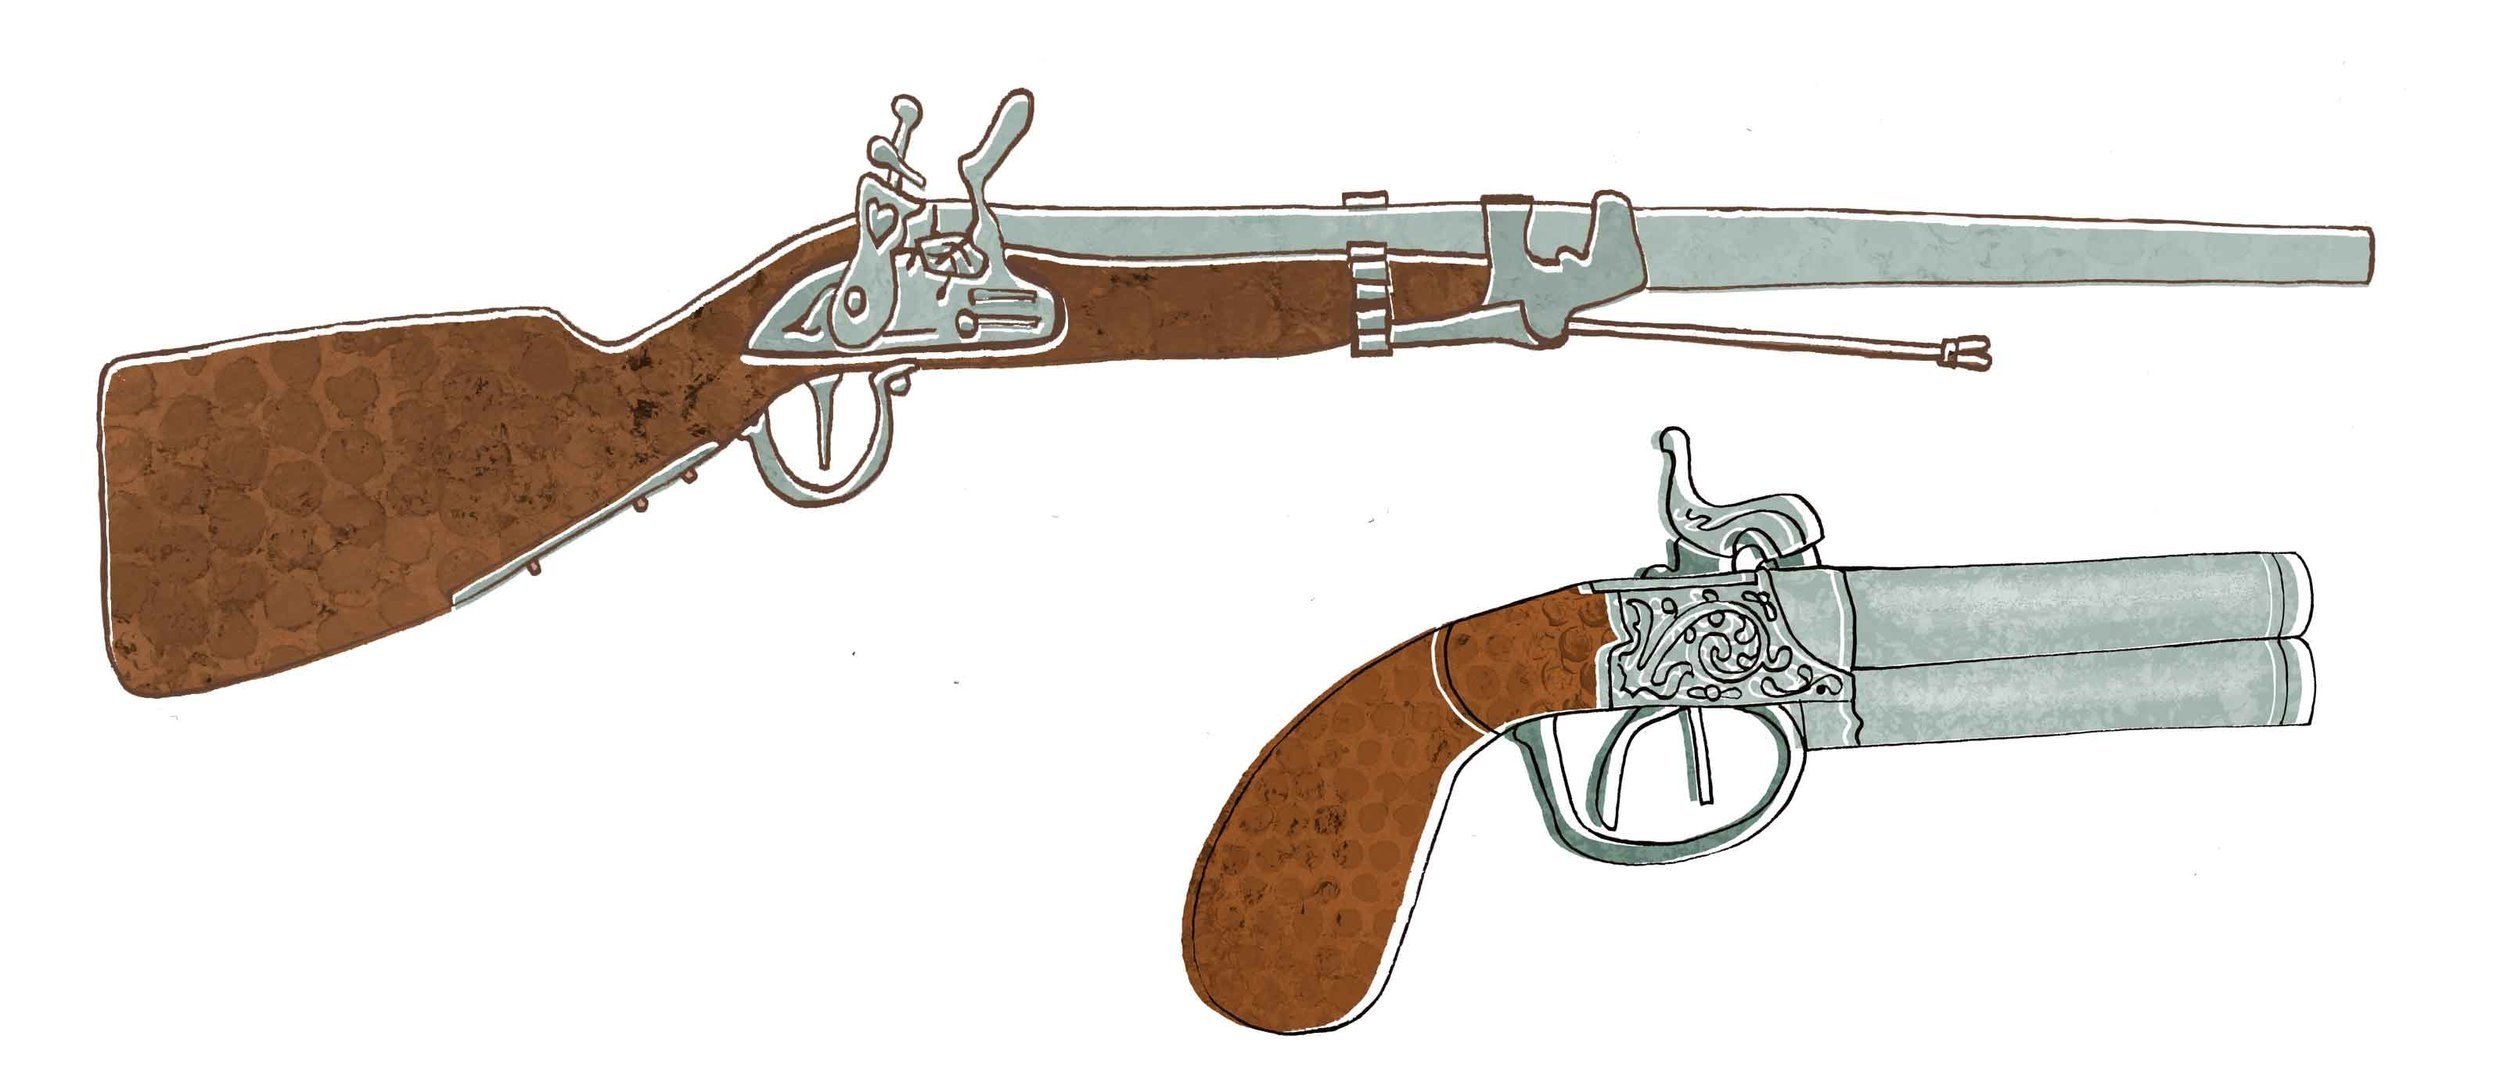 Graham's gun and the keeper Simpson's pistol